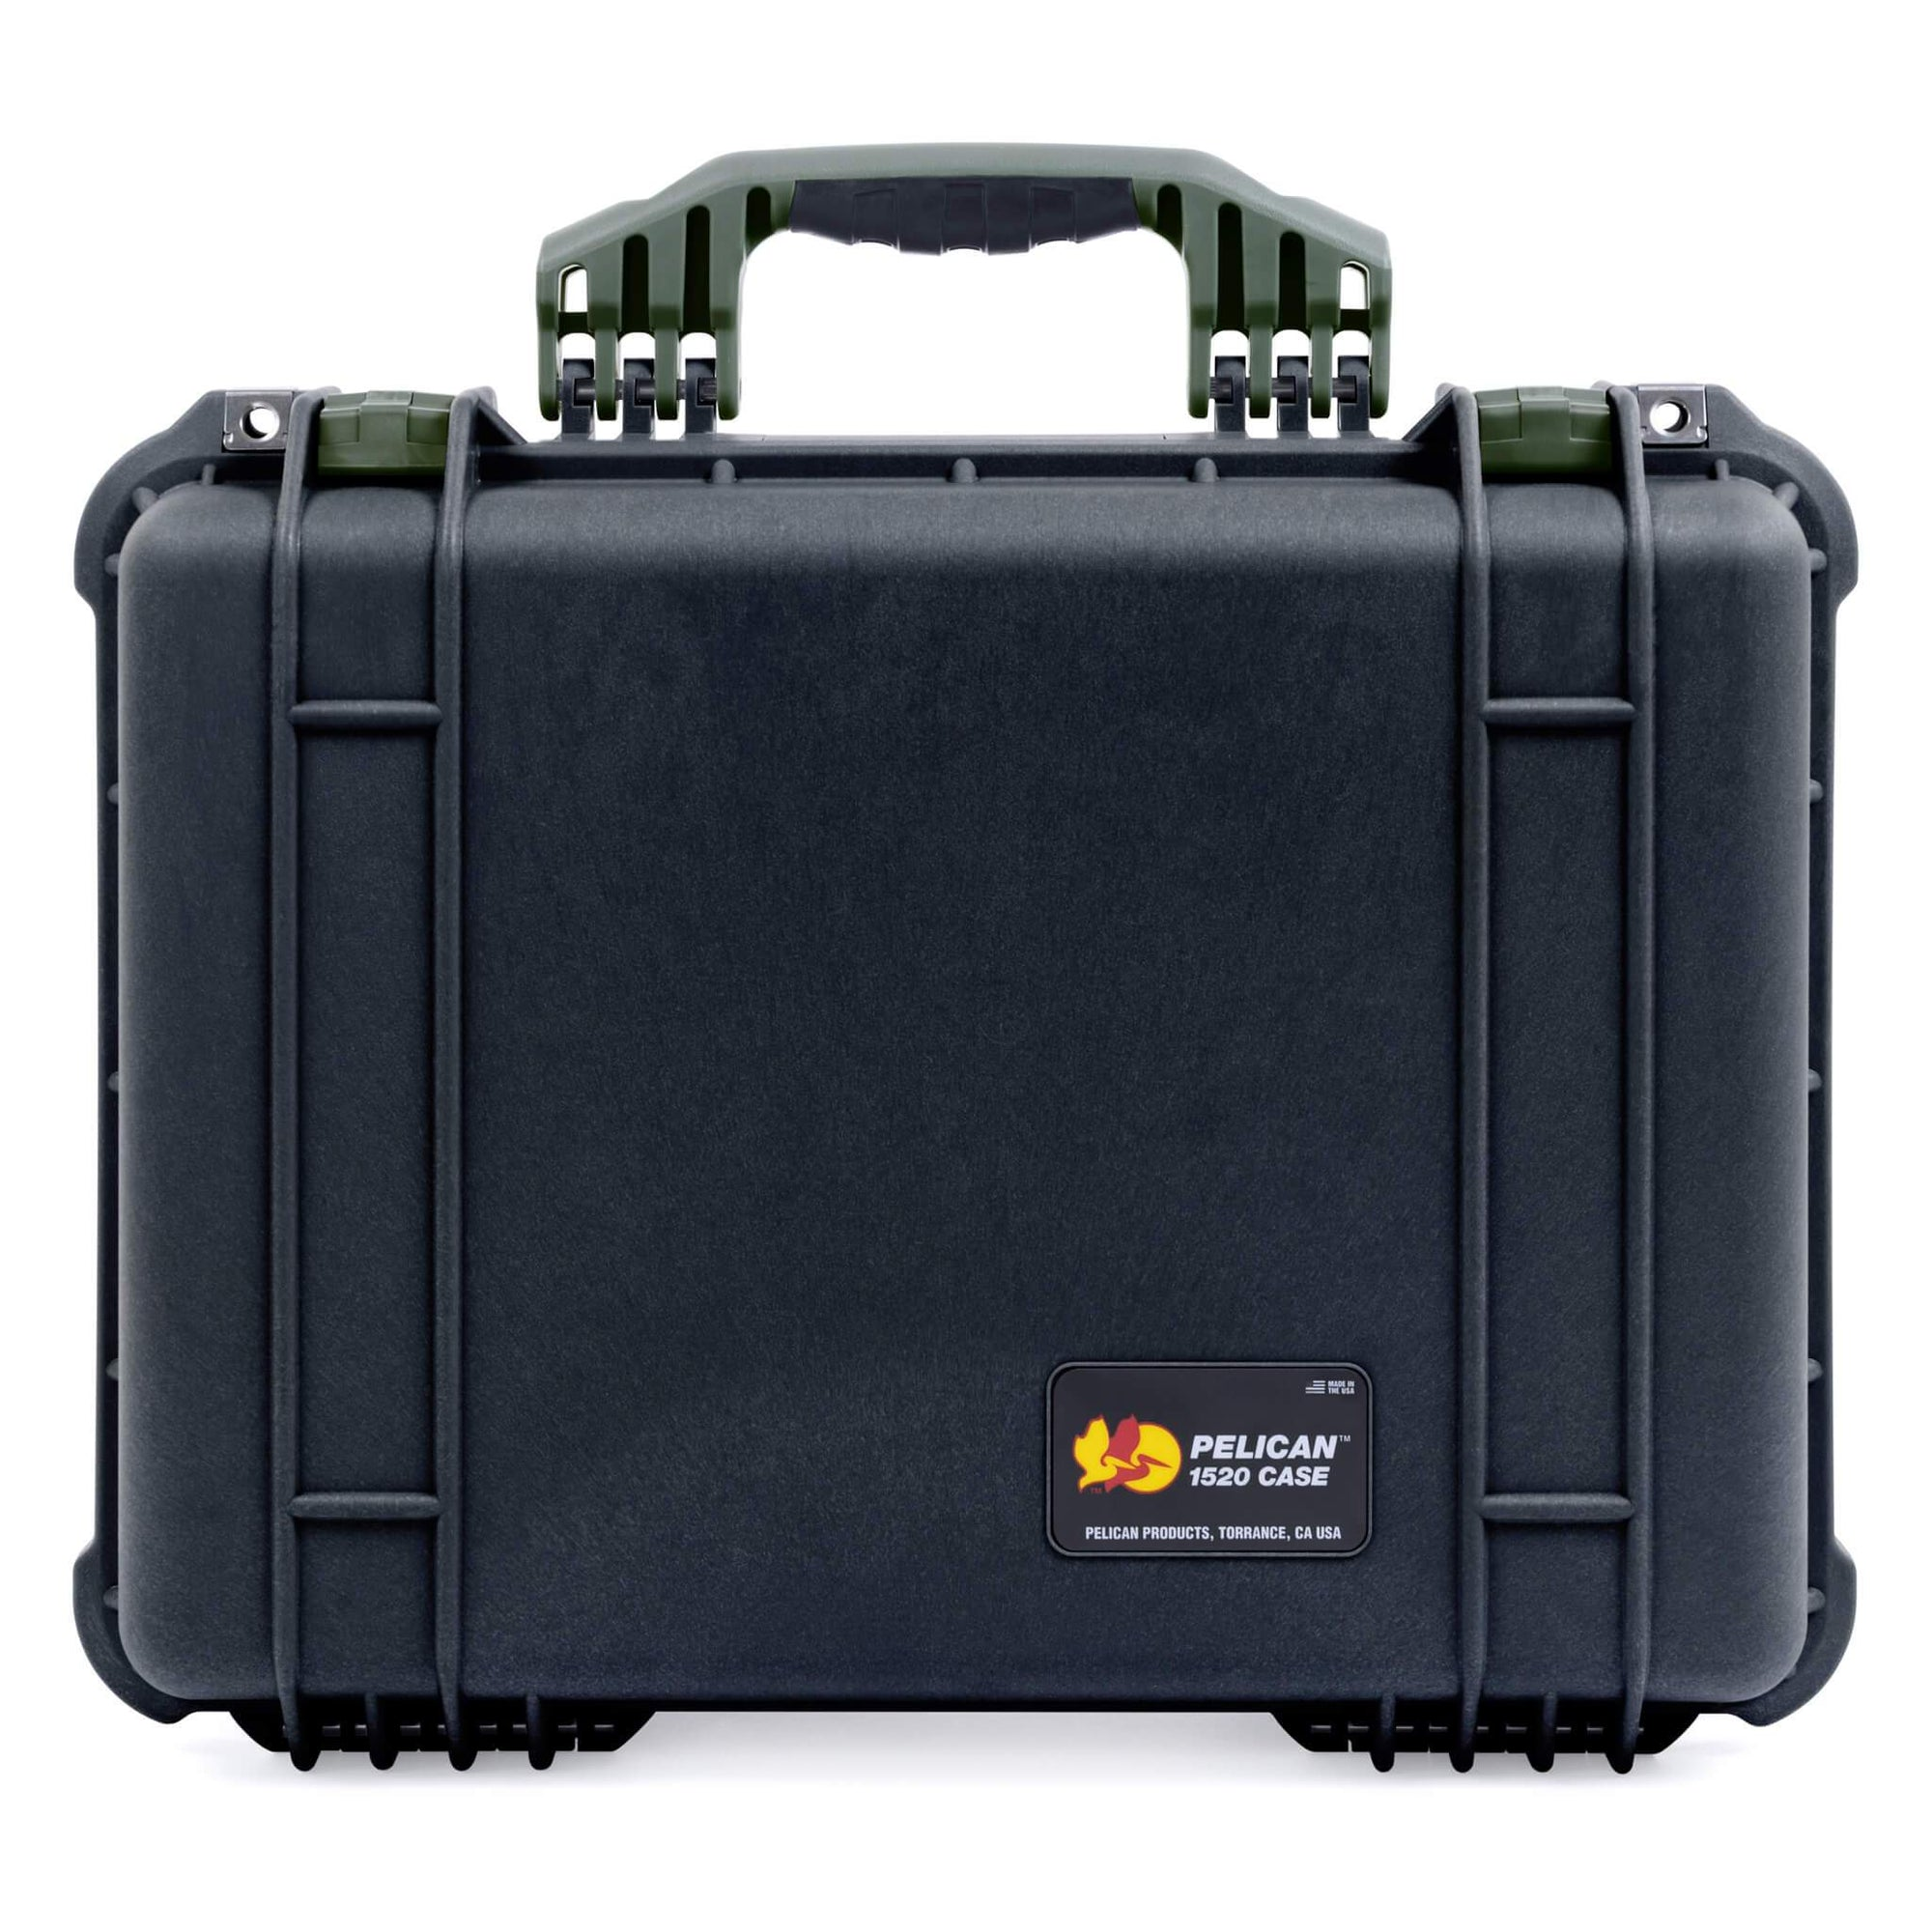 Pelican 1520 Case, Black with OD Green Handle & Latches